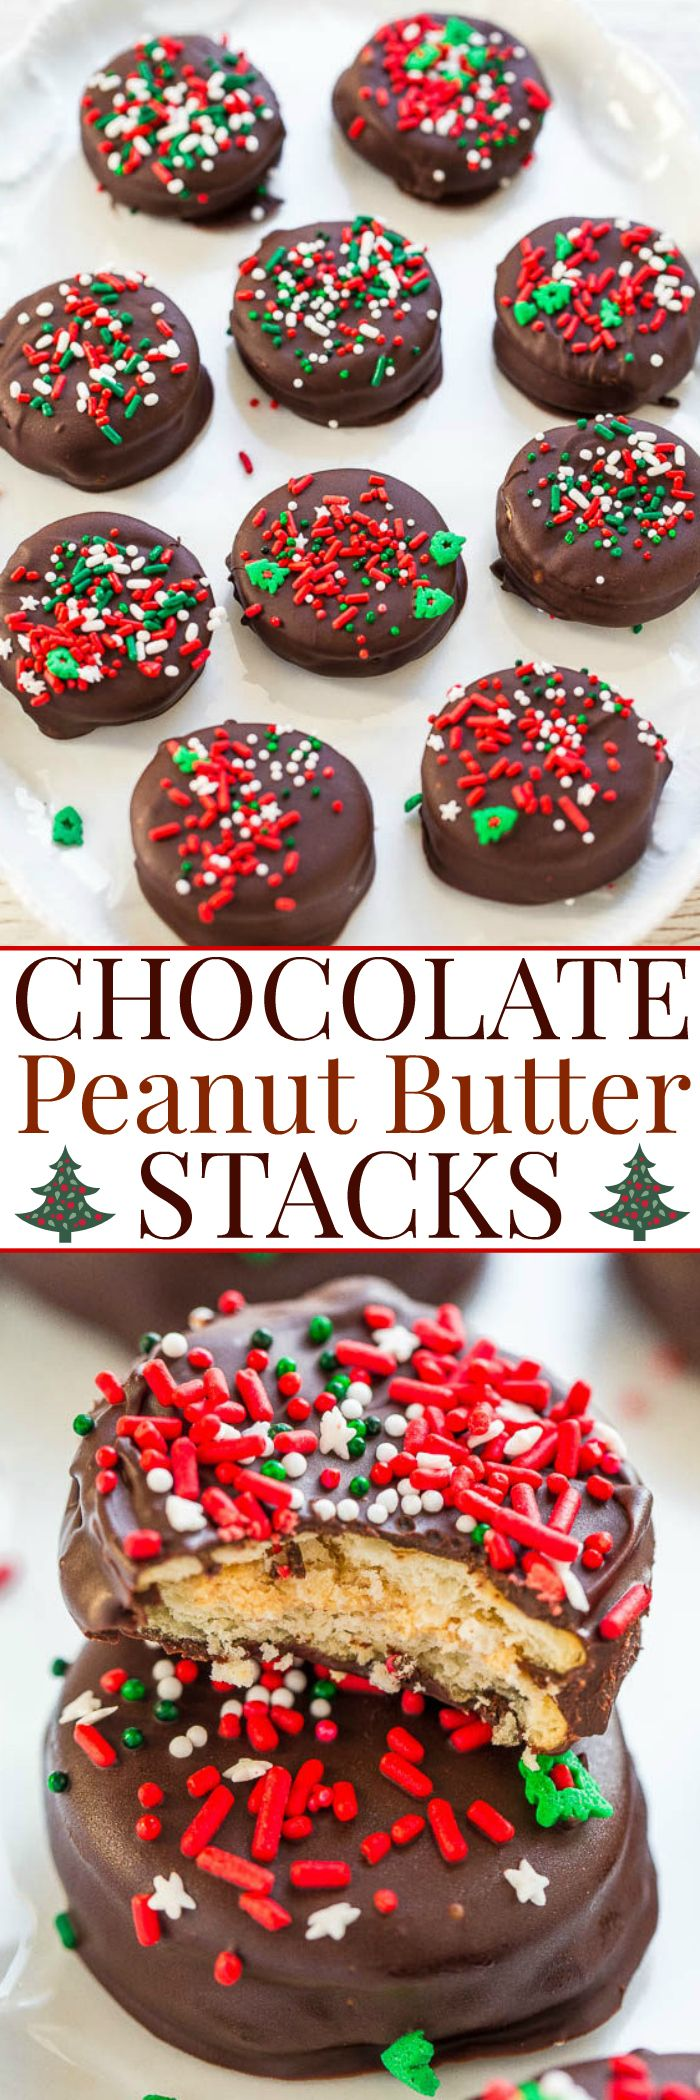 Chocolate Peanut Butter Stacks - EASY, NO-BAKE treats that are a holiday favorite!! They have it all: Salty, sweet, crunchy, and gooey with chocolate and peanut butter! Great for cookie exchanges or impromptu parties!!